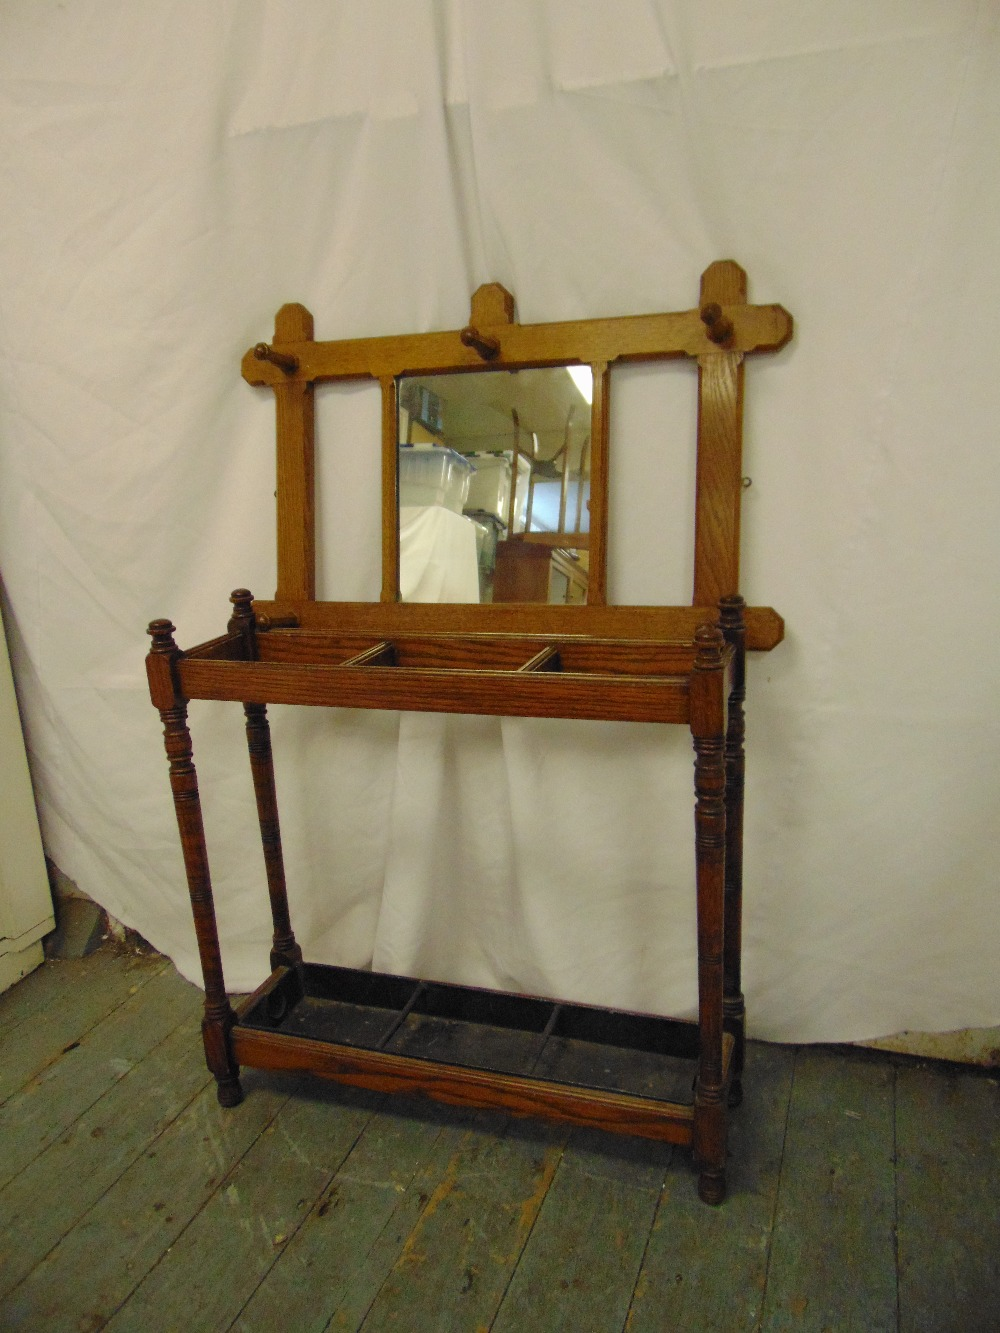 Lot 49 - A rectangular oak wall mounted hat and coat rack and an umbrella stand